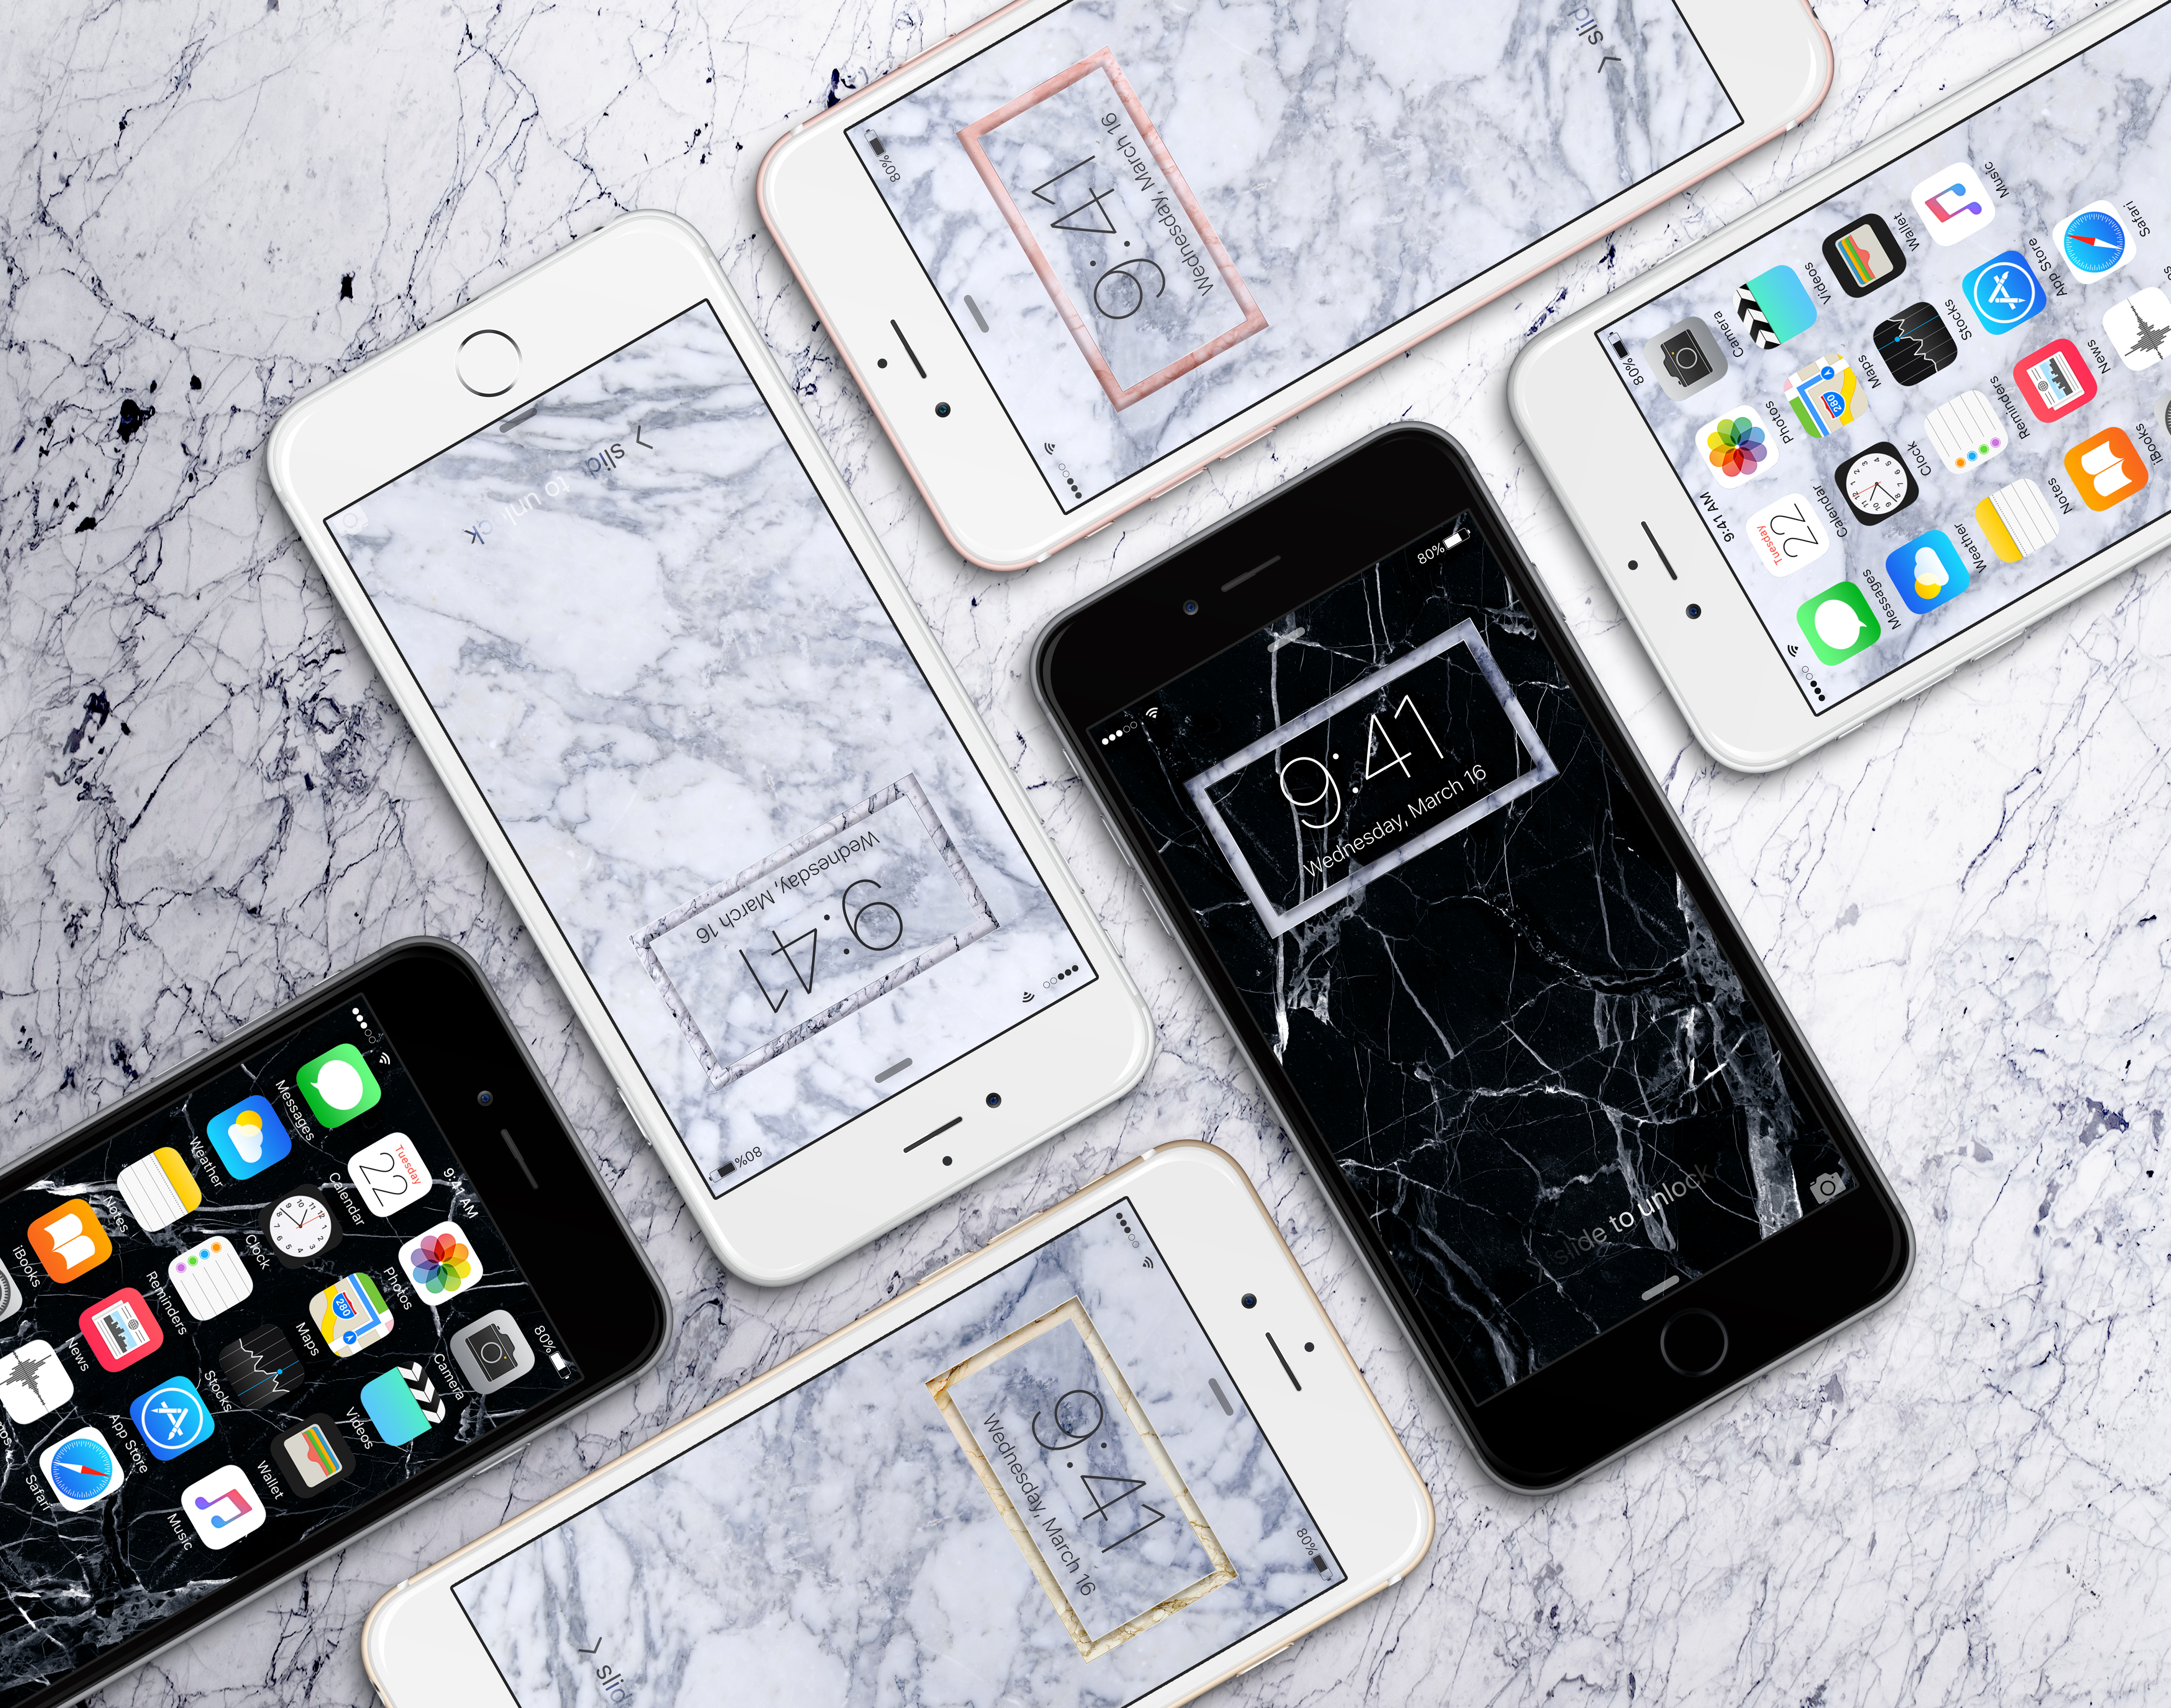 Amazing Wallpaper Marble Text - marble_iphone_wallpapers_by_jasonzigrino-d9vbuo9  Perfect Image Reference_656945.jpg